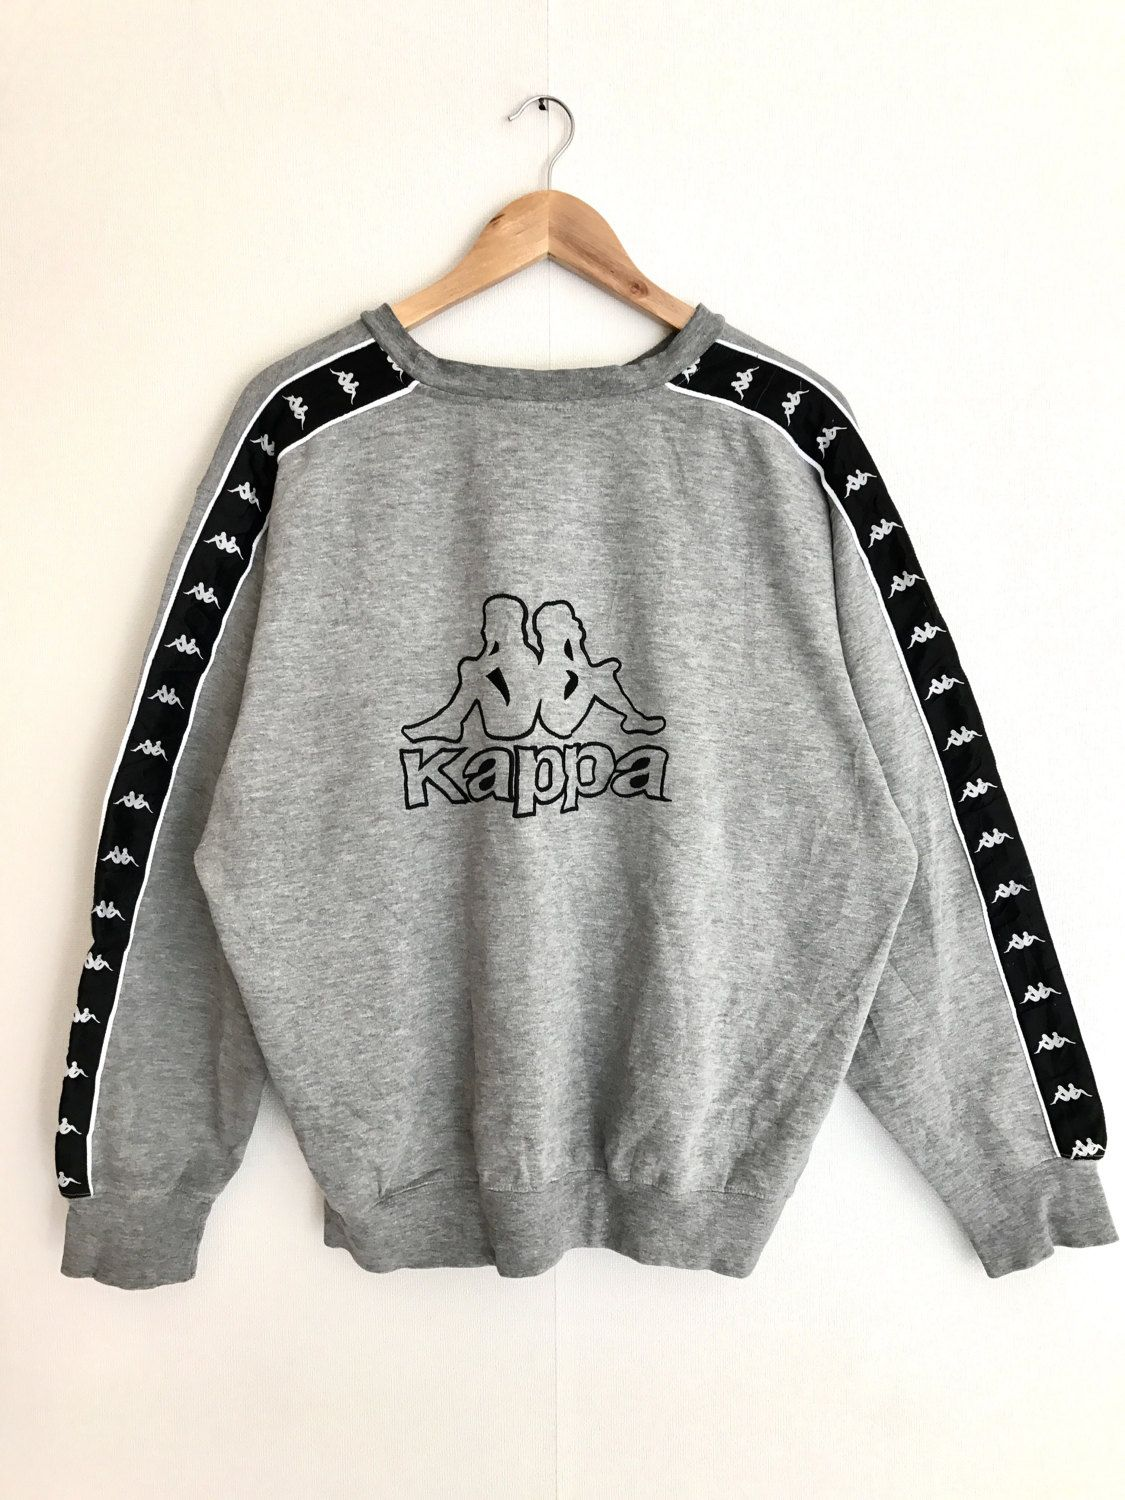 fa48c81cd60d Vintage Kappa Sport big logo designs sweatshirts 90 s hype streetwear  fashion sytle crewneck Grey color by Psychovault on Etsy